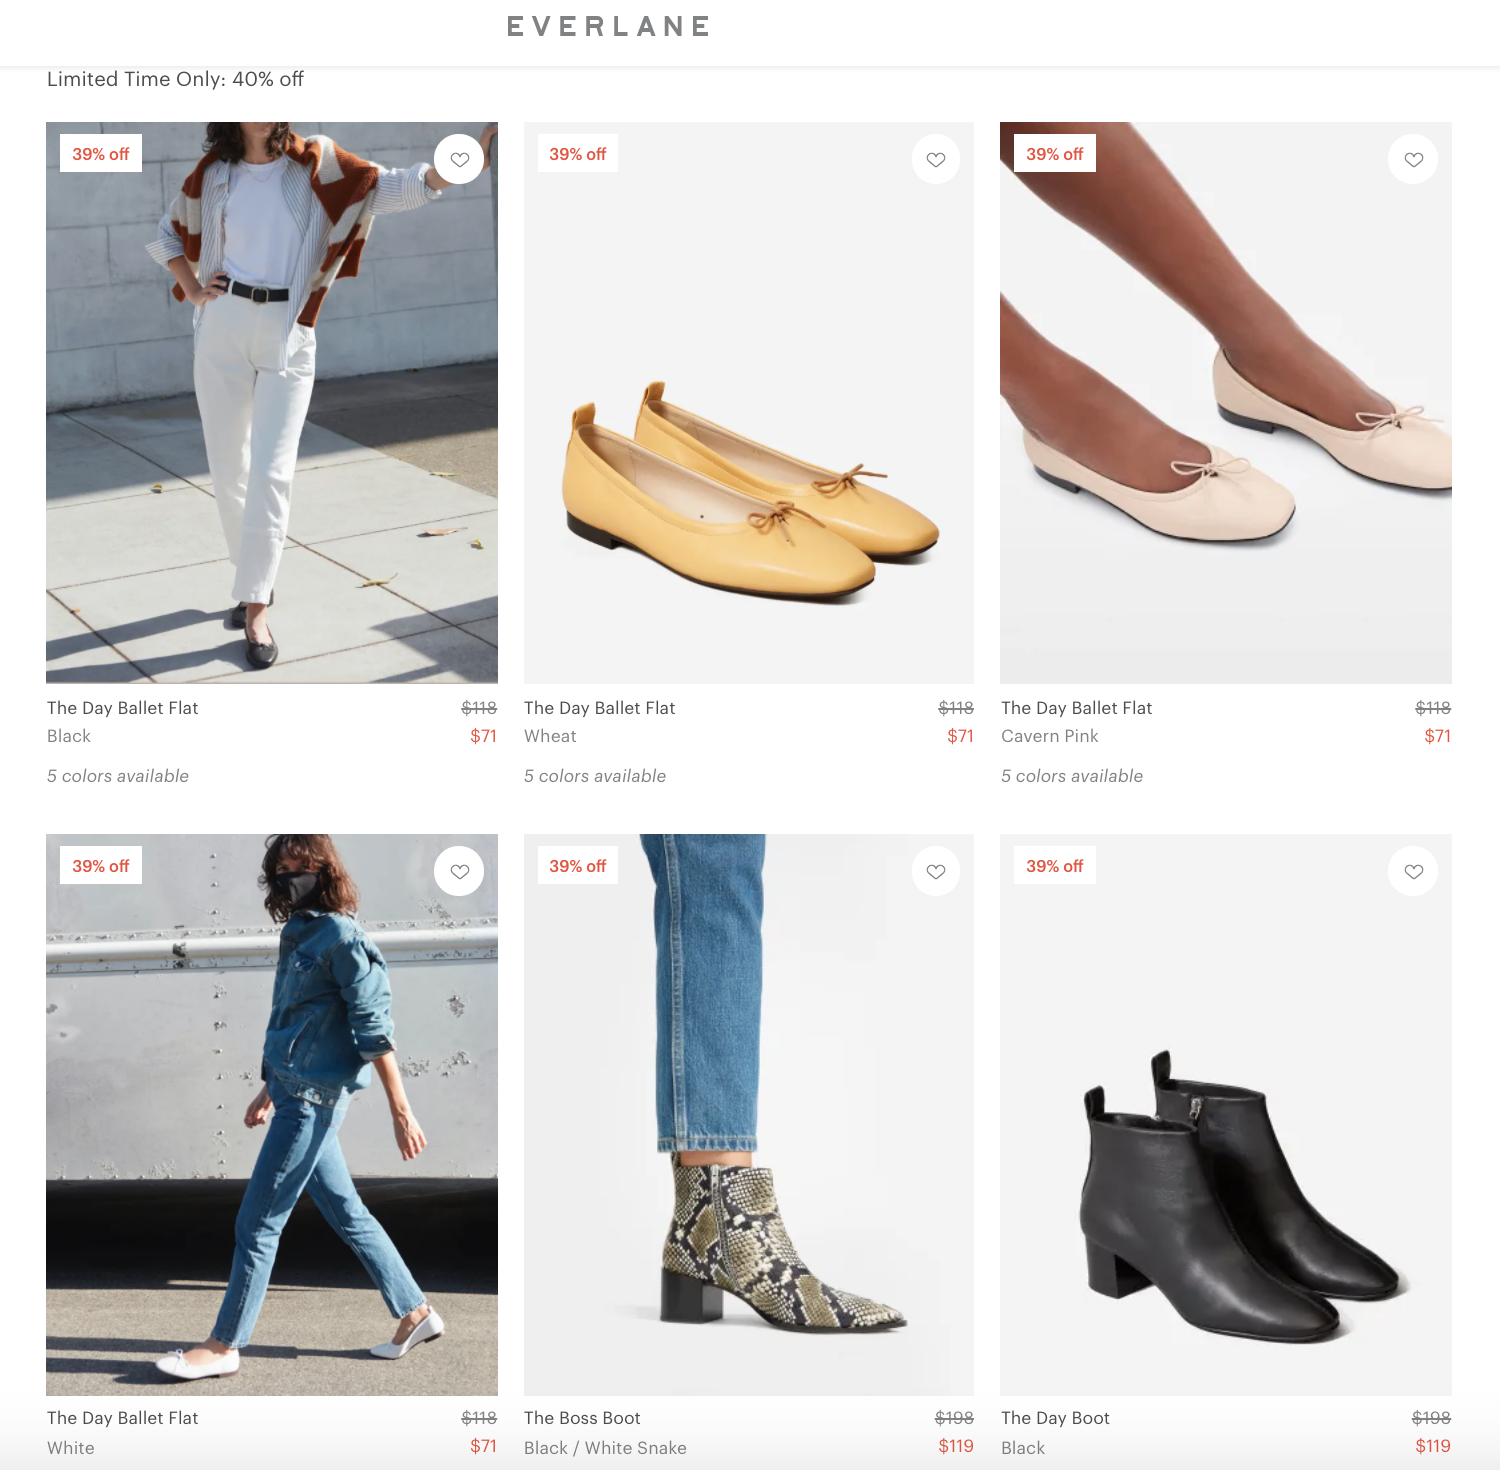 Everlane product listing page